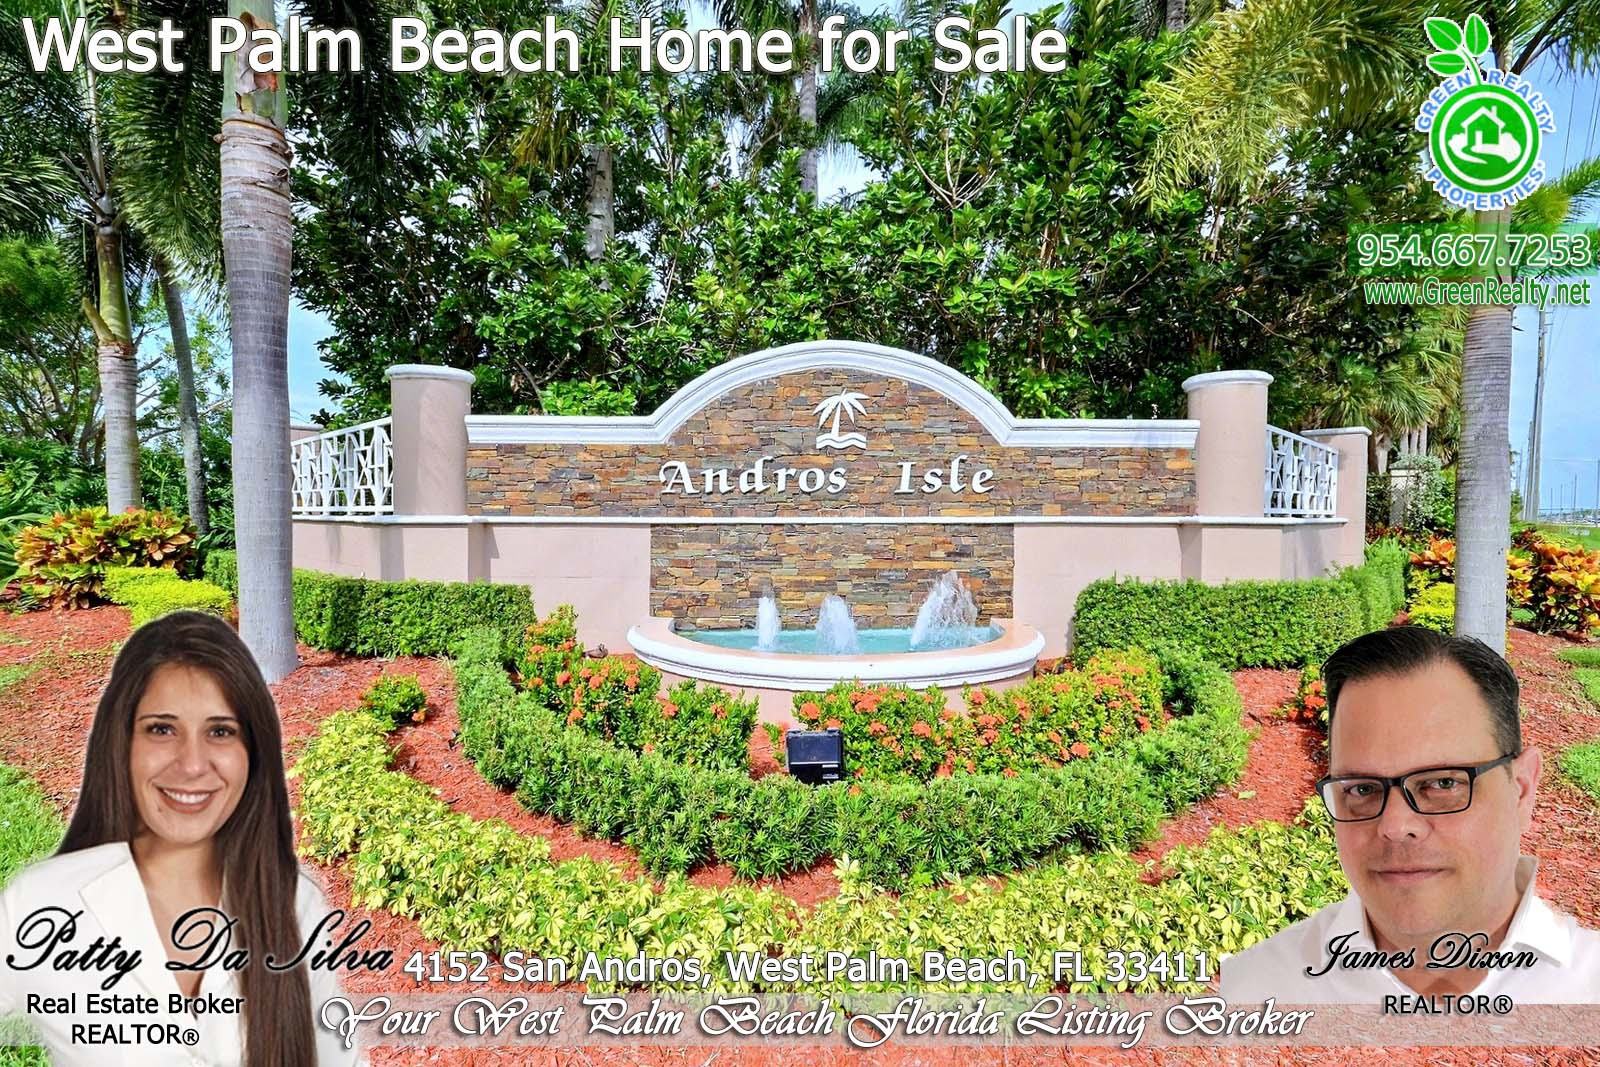 West Palm Beach Real Estate - 4152 San Andros (29)